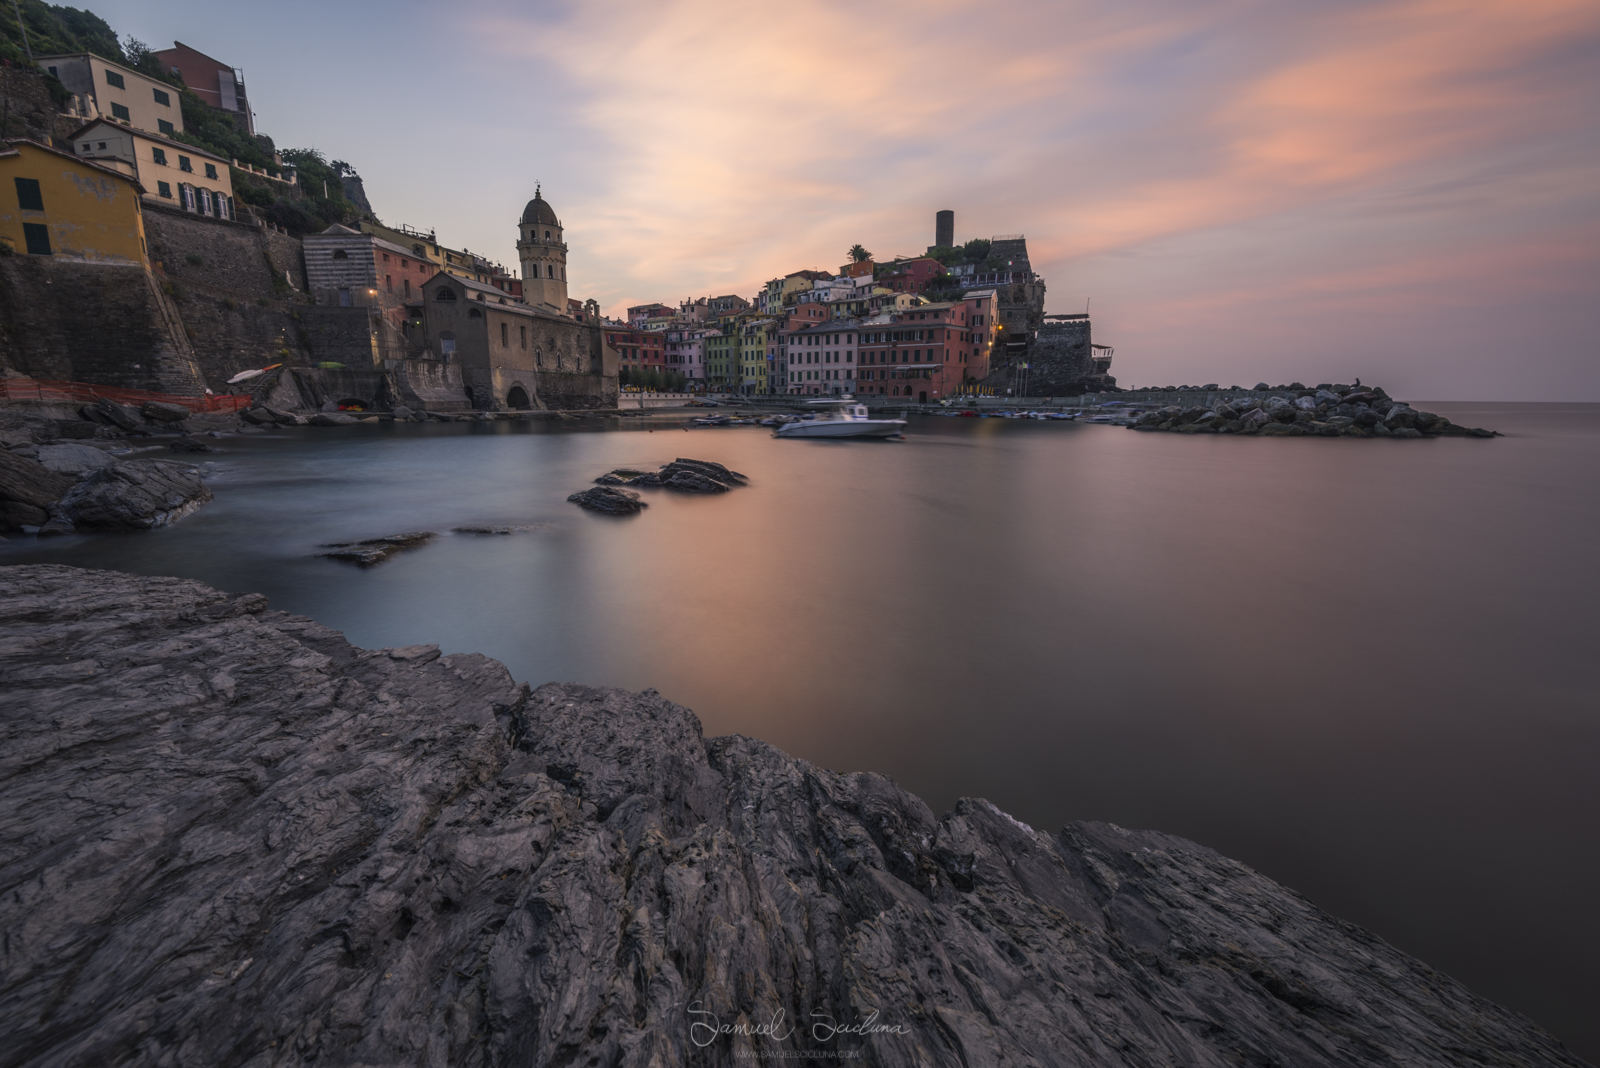 Sunrise at Vernazza - EXIF 240 seconds, ISO64 at F16